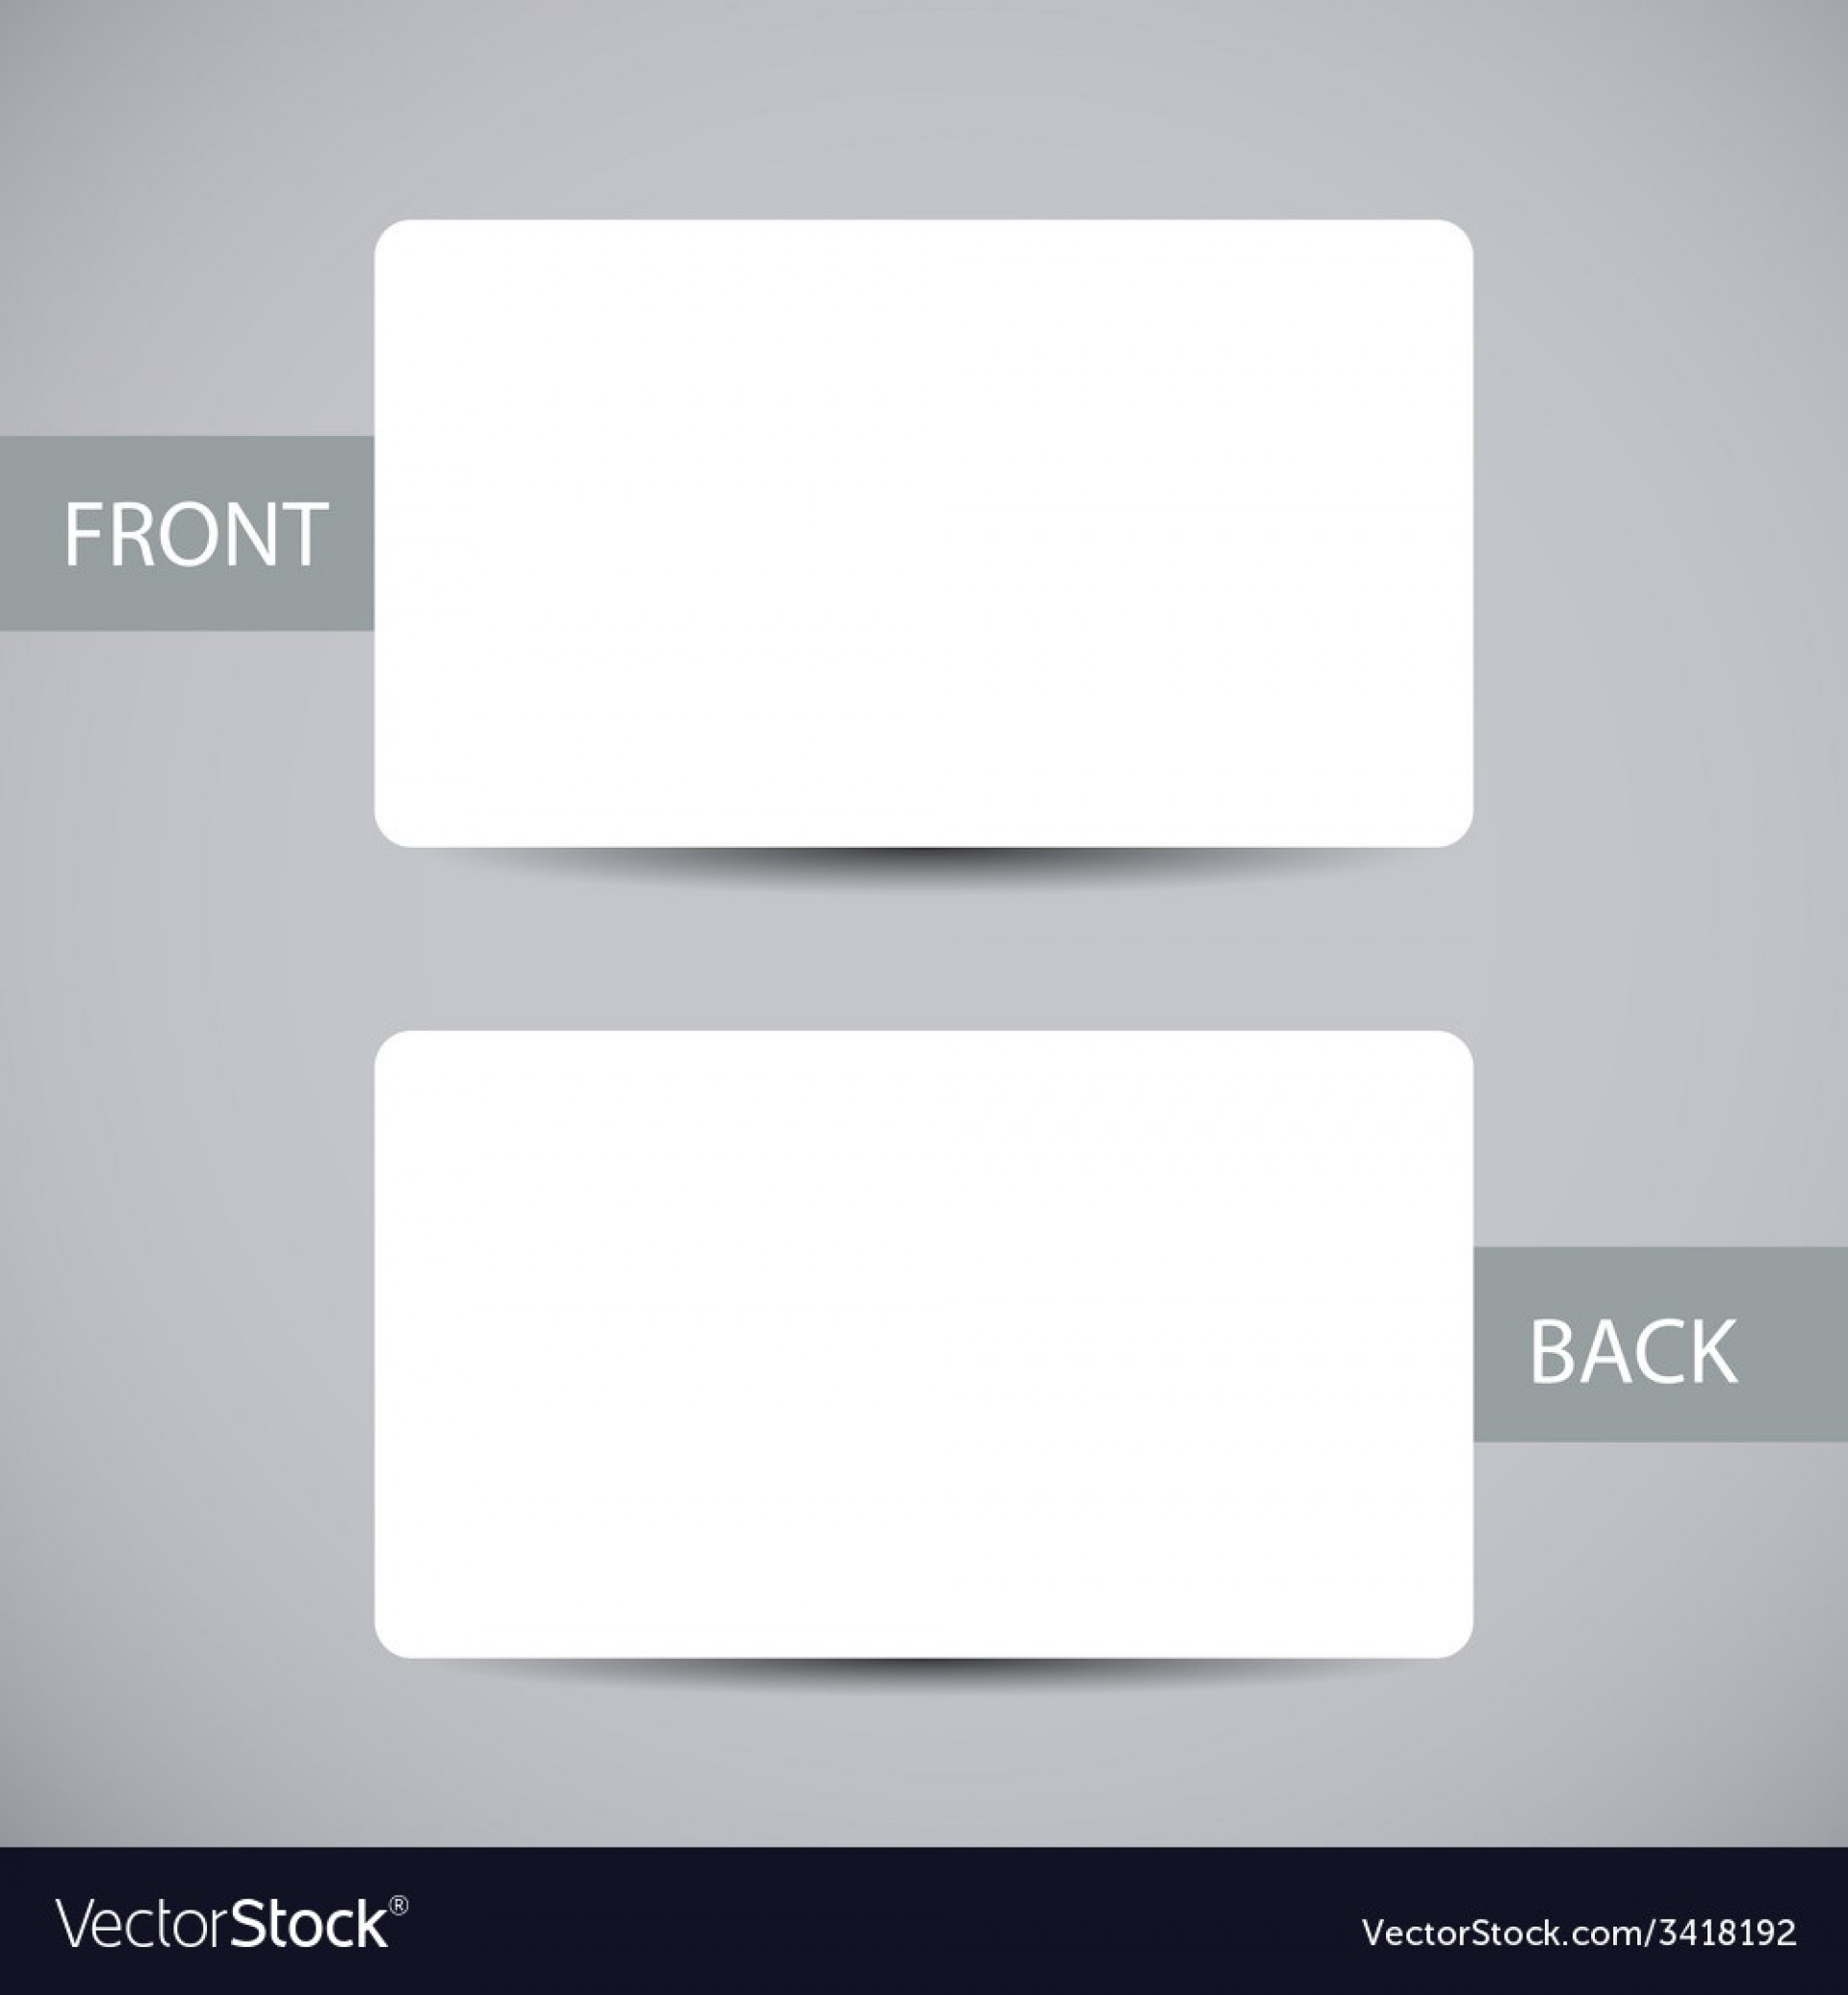 006 Exceptional Busines Card Blank Template Highest Clarity  Download Free1920